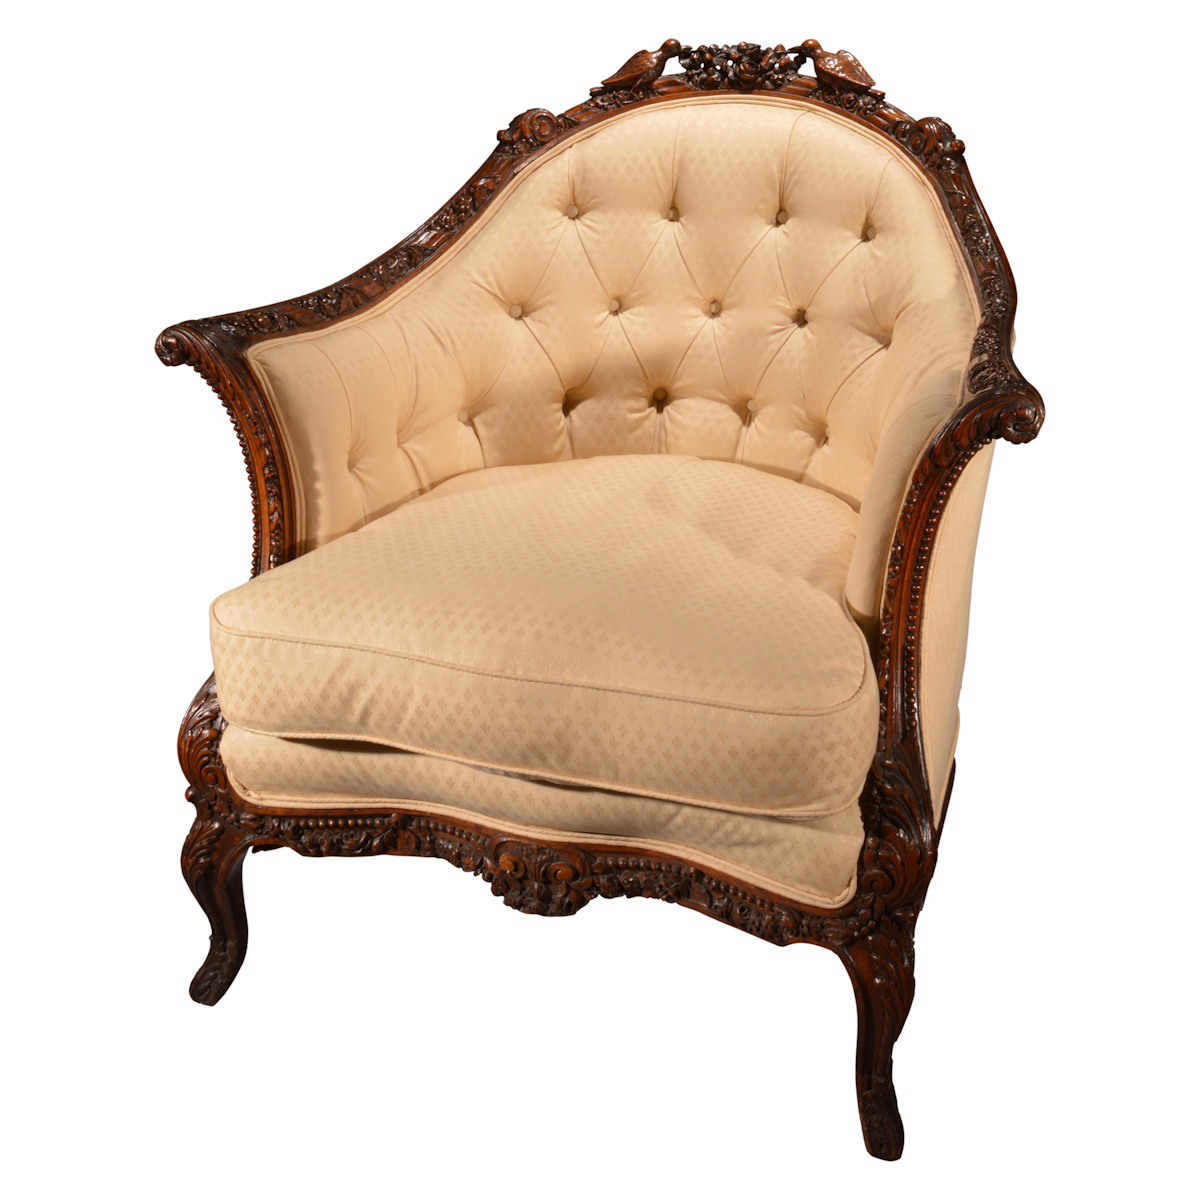 Antique bergere chair - Antique Bergere Chair